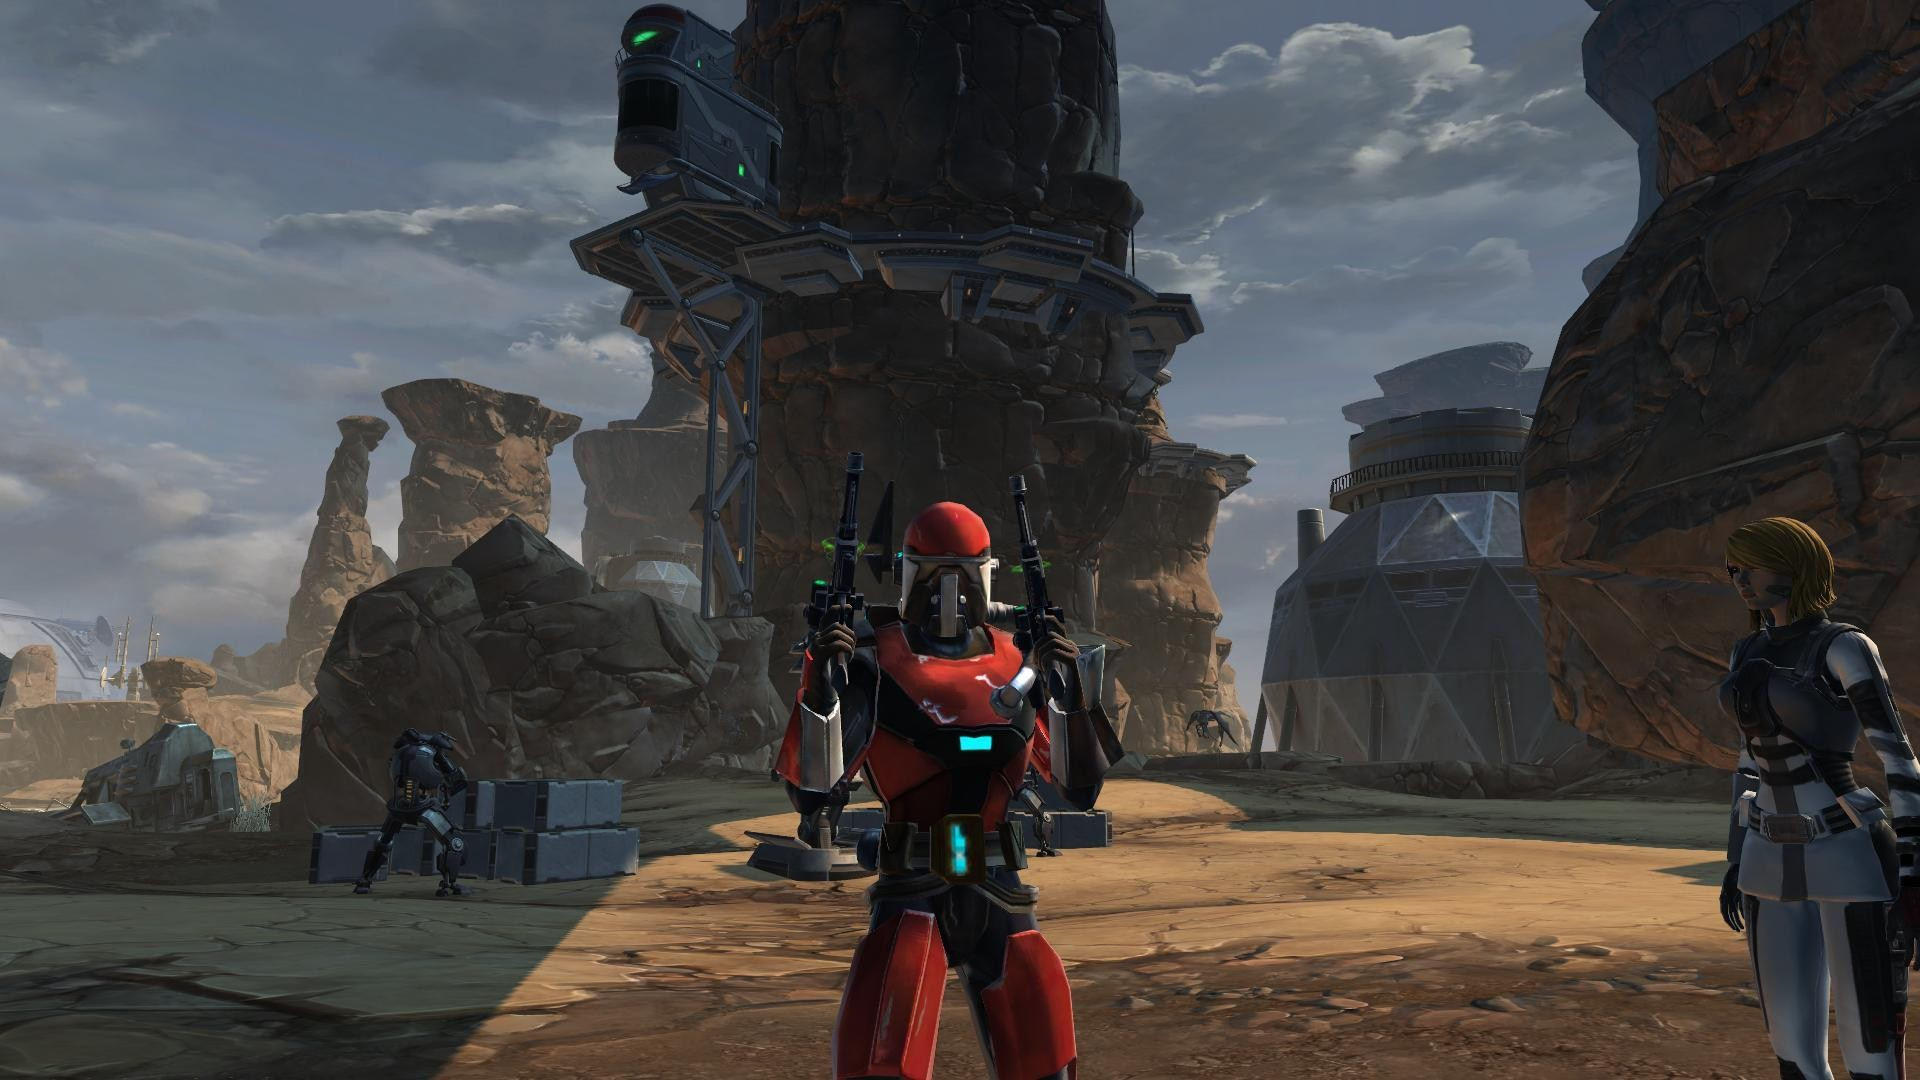 Res: 1920x1080, Images For > Swtor Bounty Hunter Wallpaper